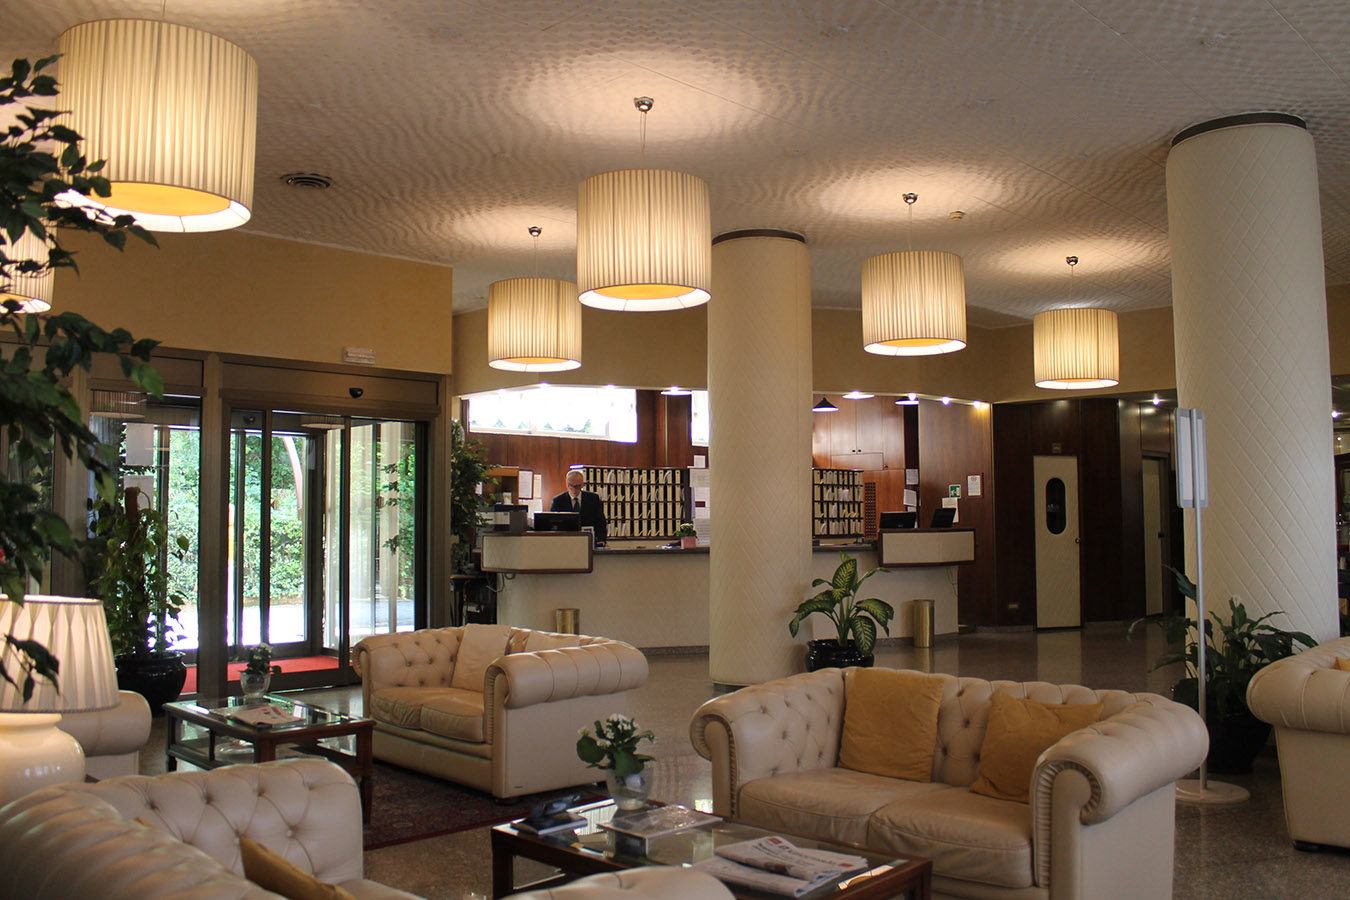 Milano - Best Western Air Hotel Linate